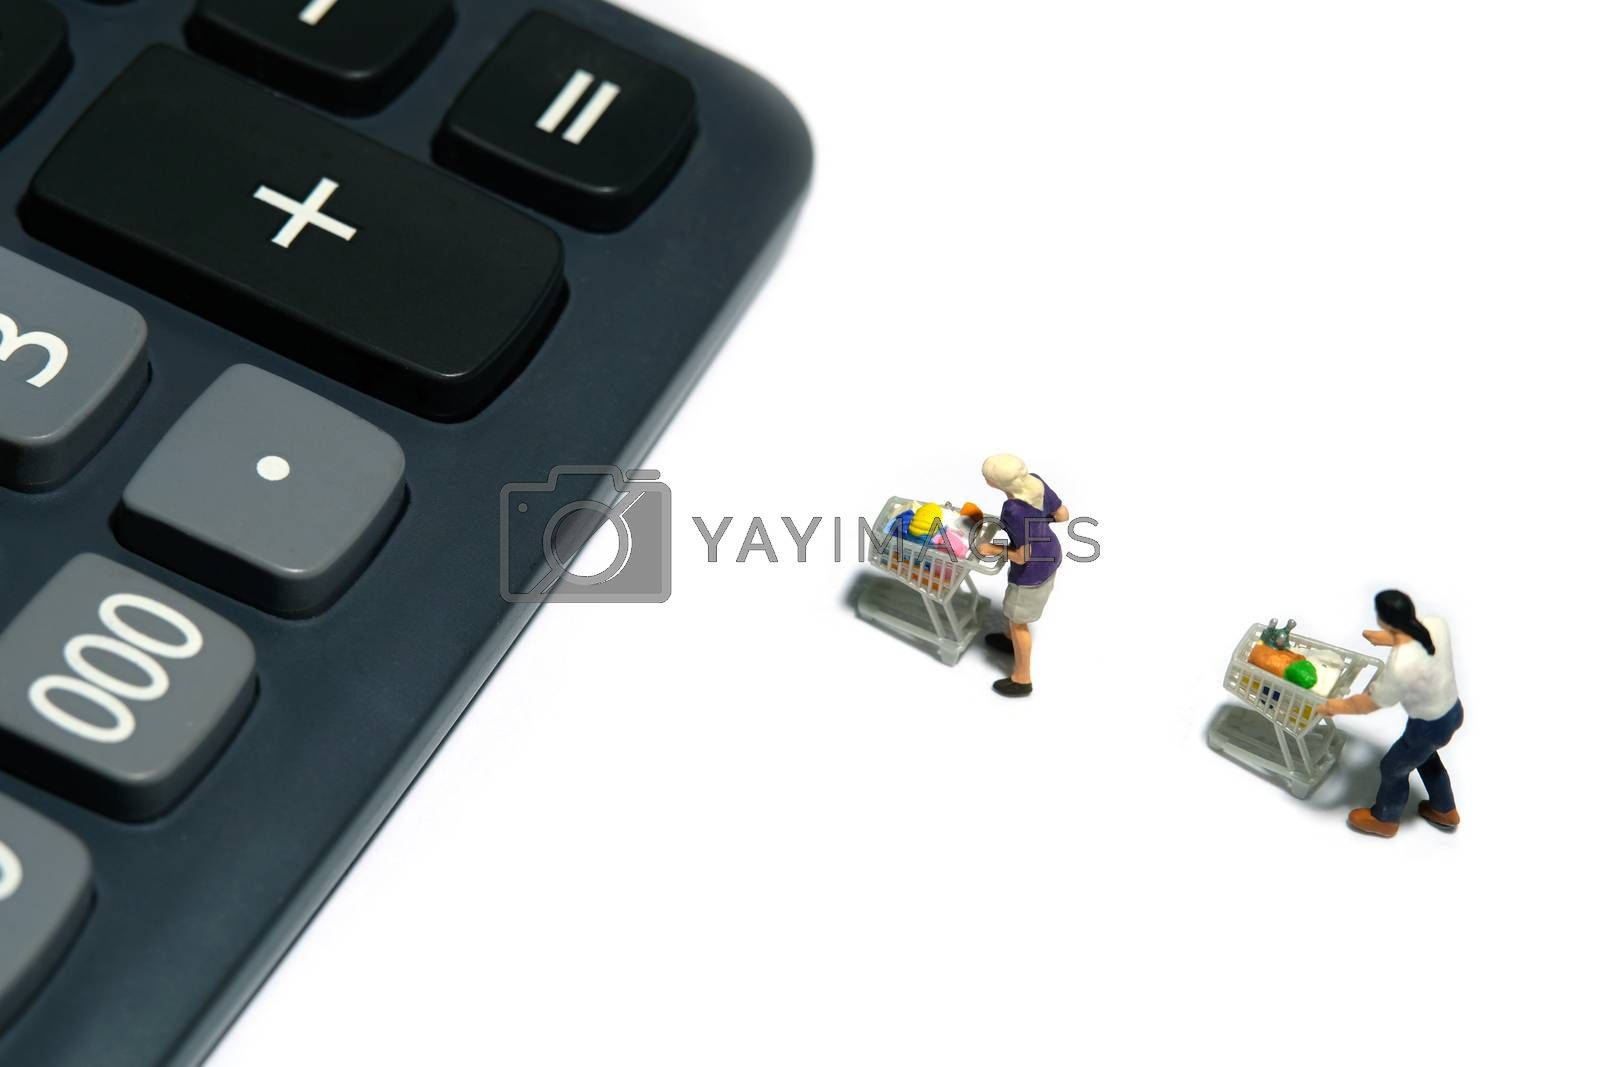 people with cart lining up to calculator, calculate total purchase for groceries. Miniature people figurines toys conceptual photography.